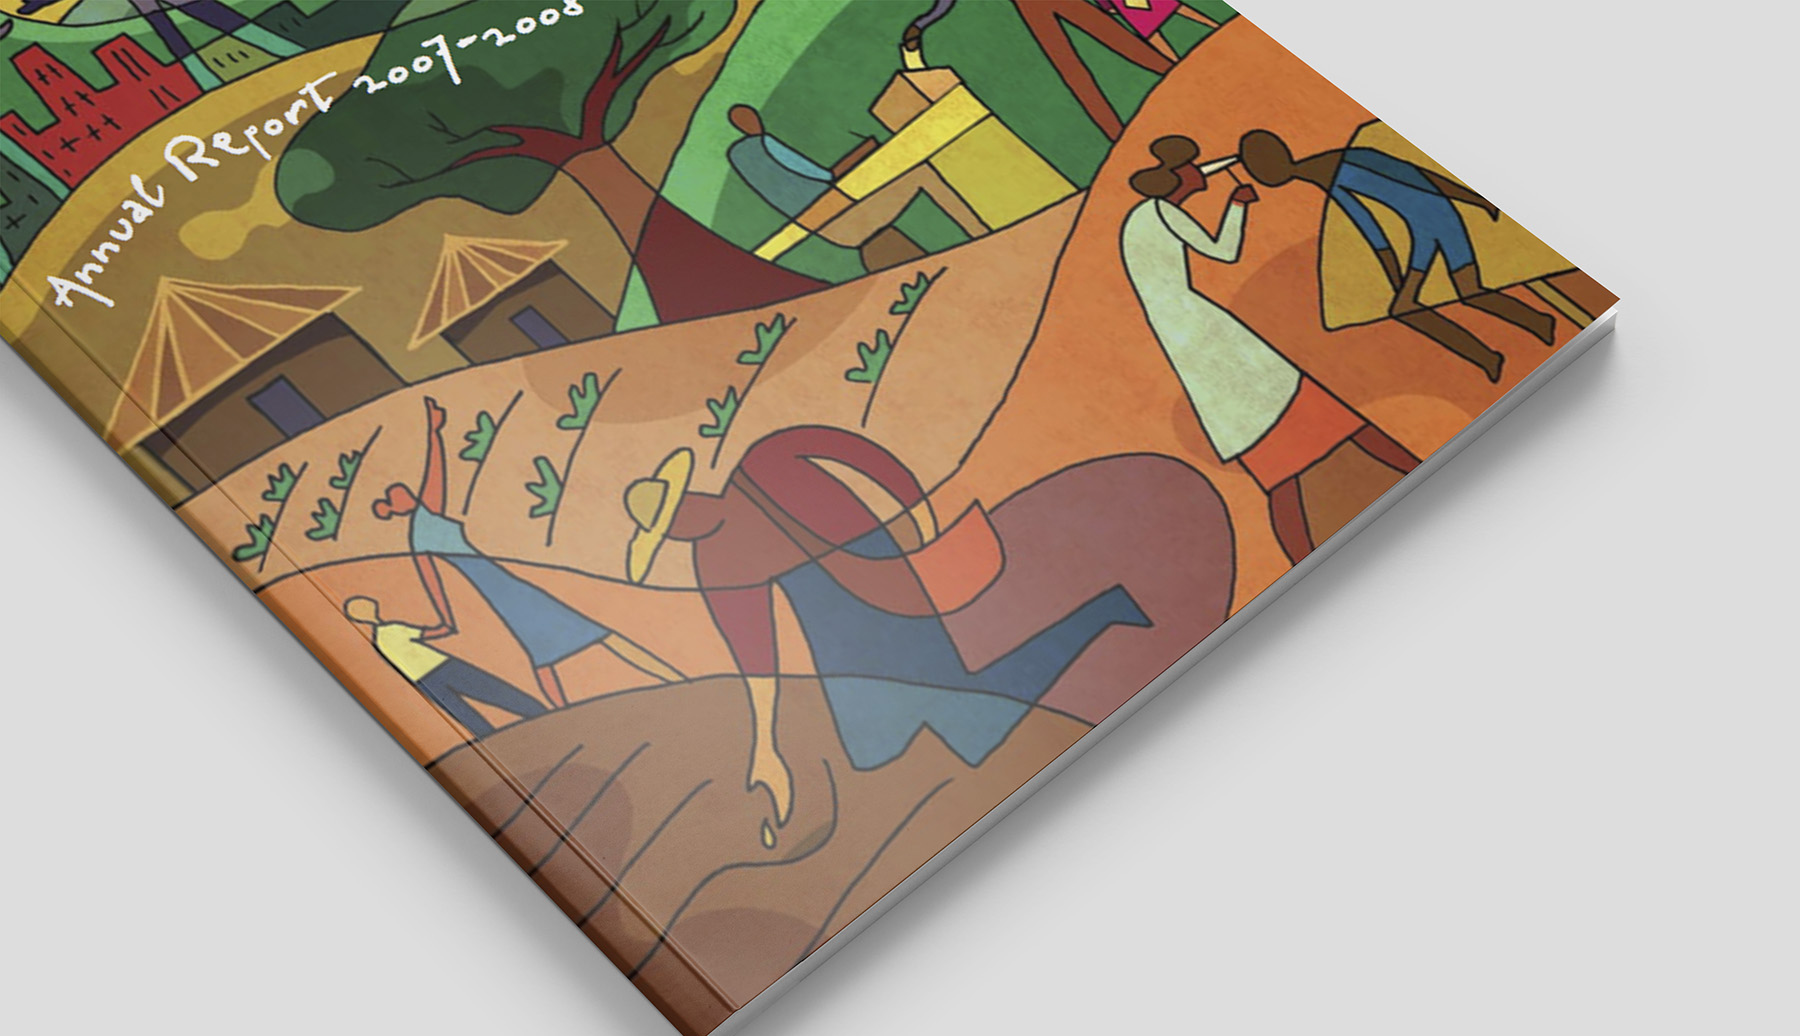 Close-up #1 Final illustration as seen on The Carter Center Annual Report 2007 - 2008 publication.